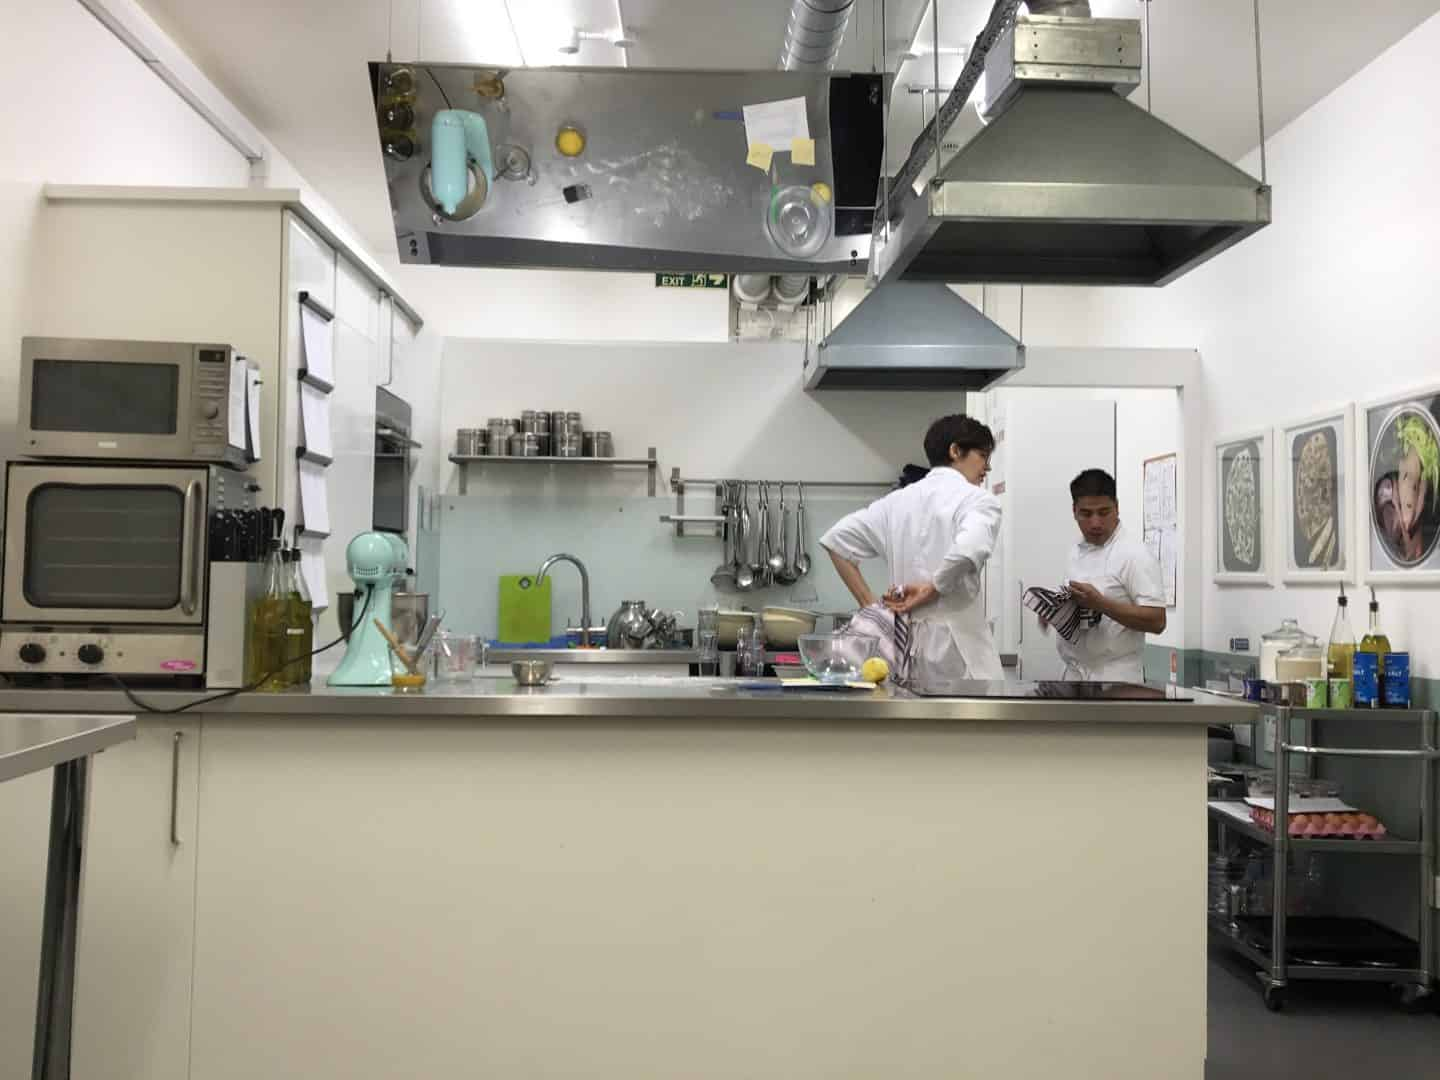 The kitchen at Cookery School, at Little Portland Street, London